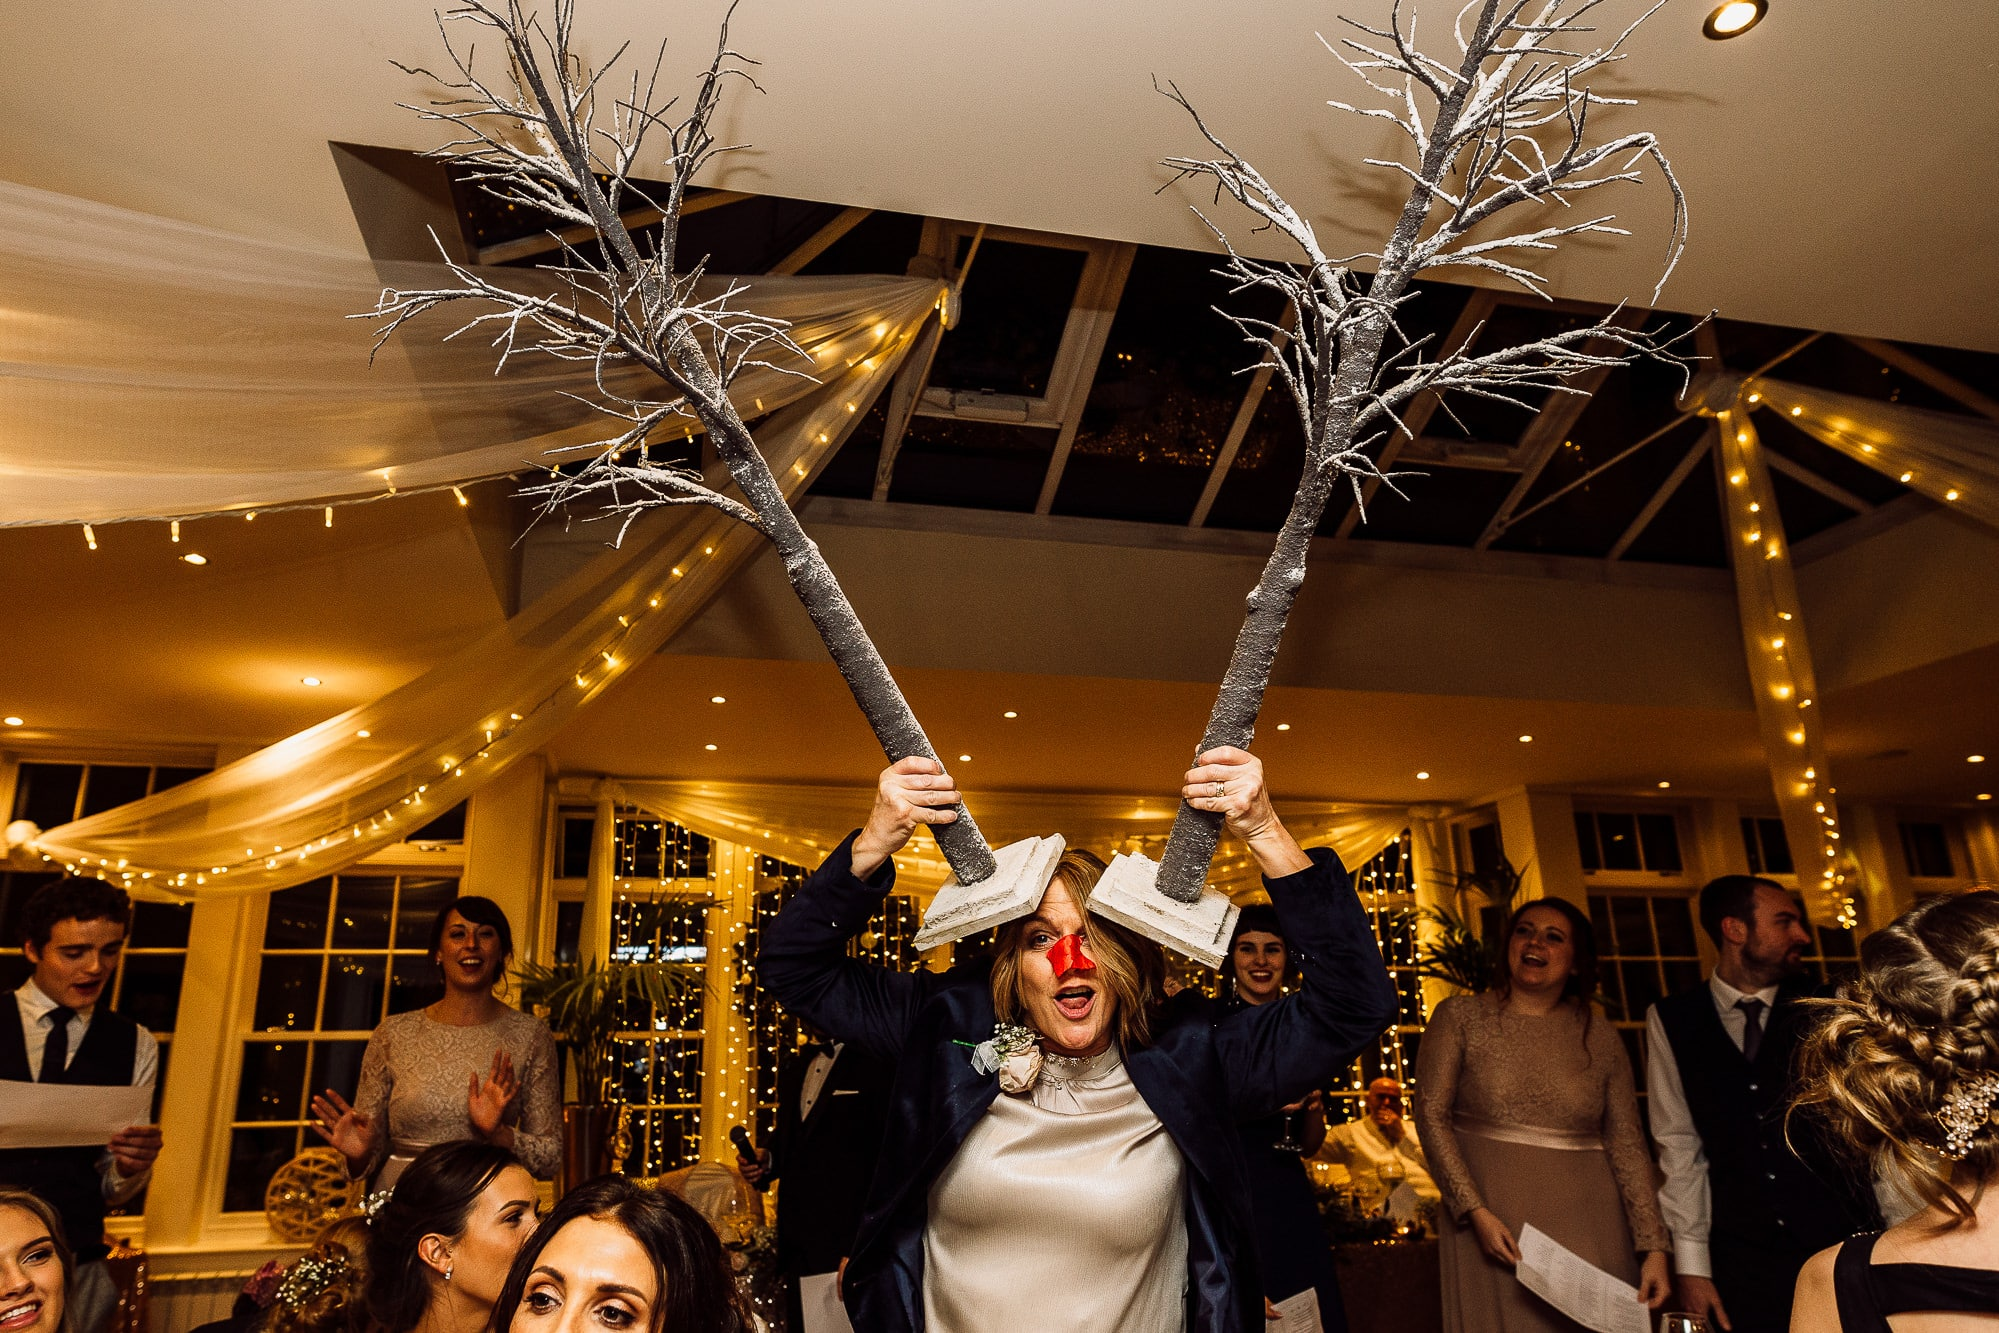 Woman pretending to be a reindeer at Mitton Hall